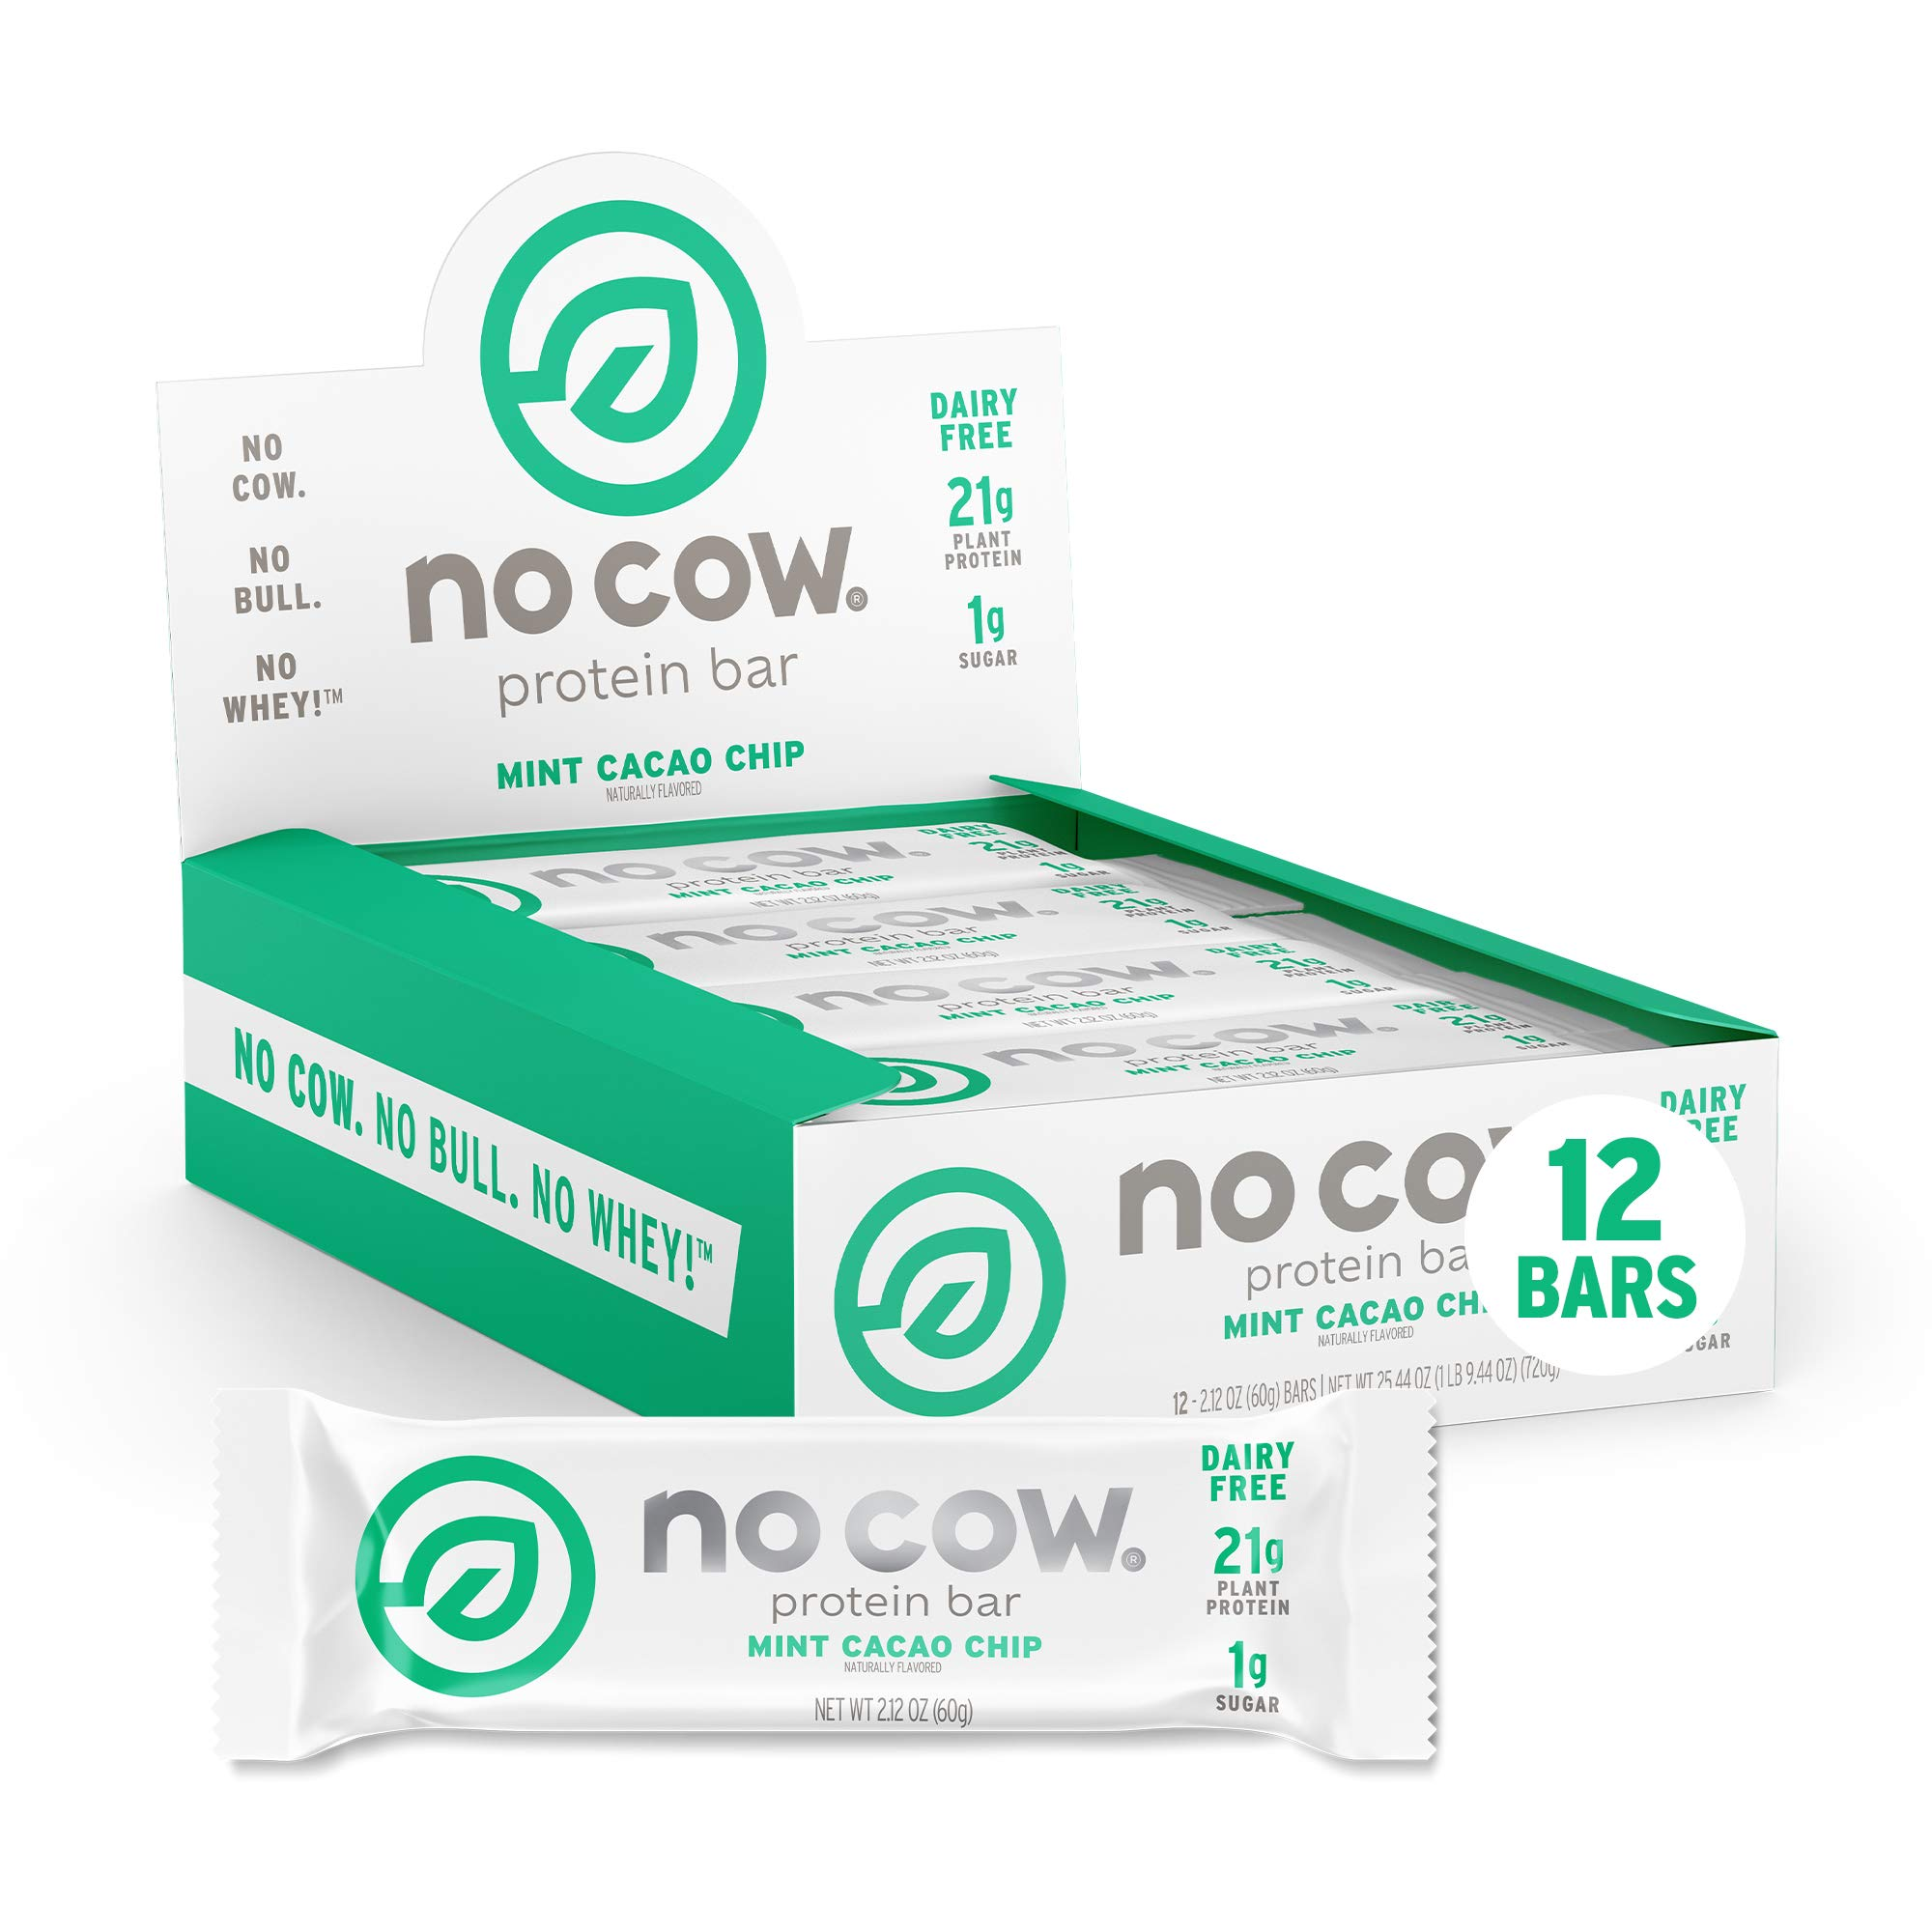 No Cow Protein Bars, Mint Cacao Chip, 21g Plant Based Vegan Protein, Keto Friendly, Low Sugar, Low Carb, Low Calorie, Gluten Free, Naturally Sweetened, Dairy Free, Non GMO, Kosher, 12 Pack